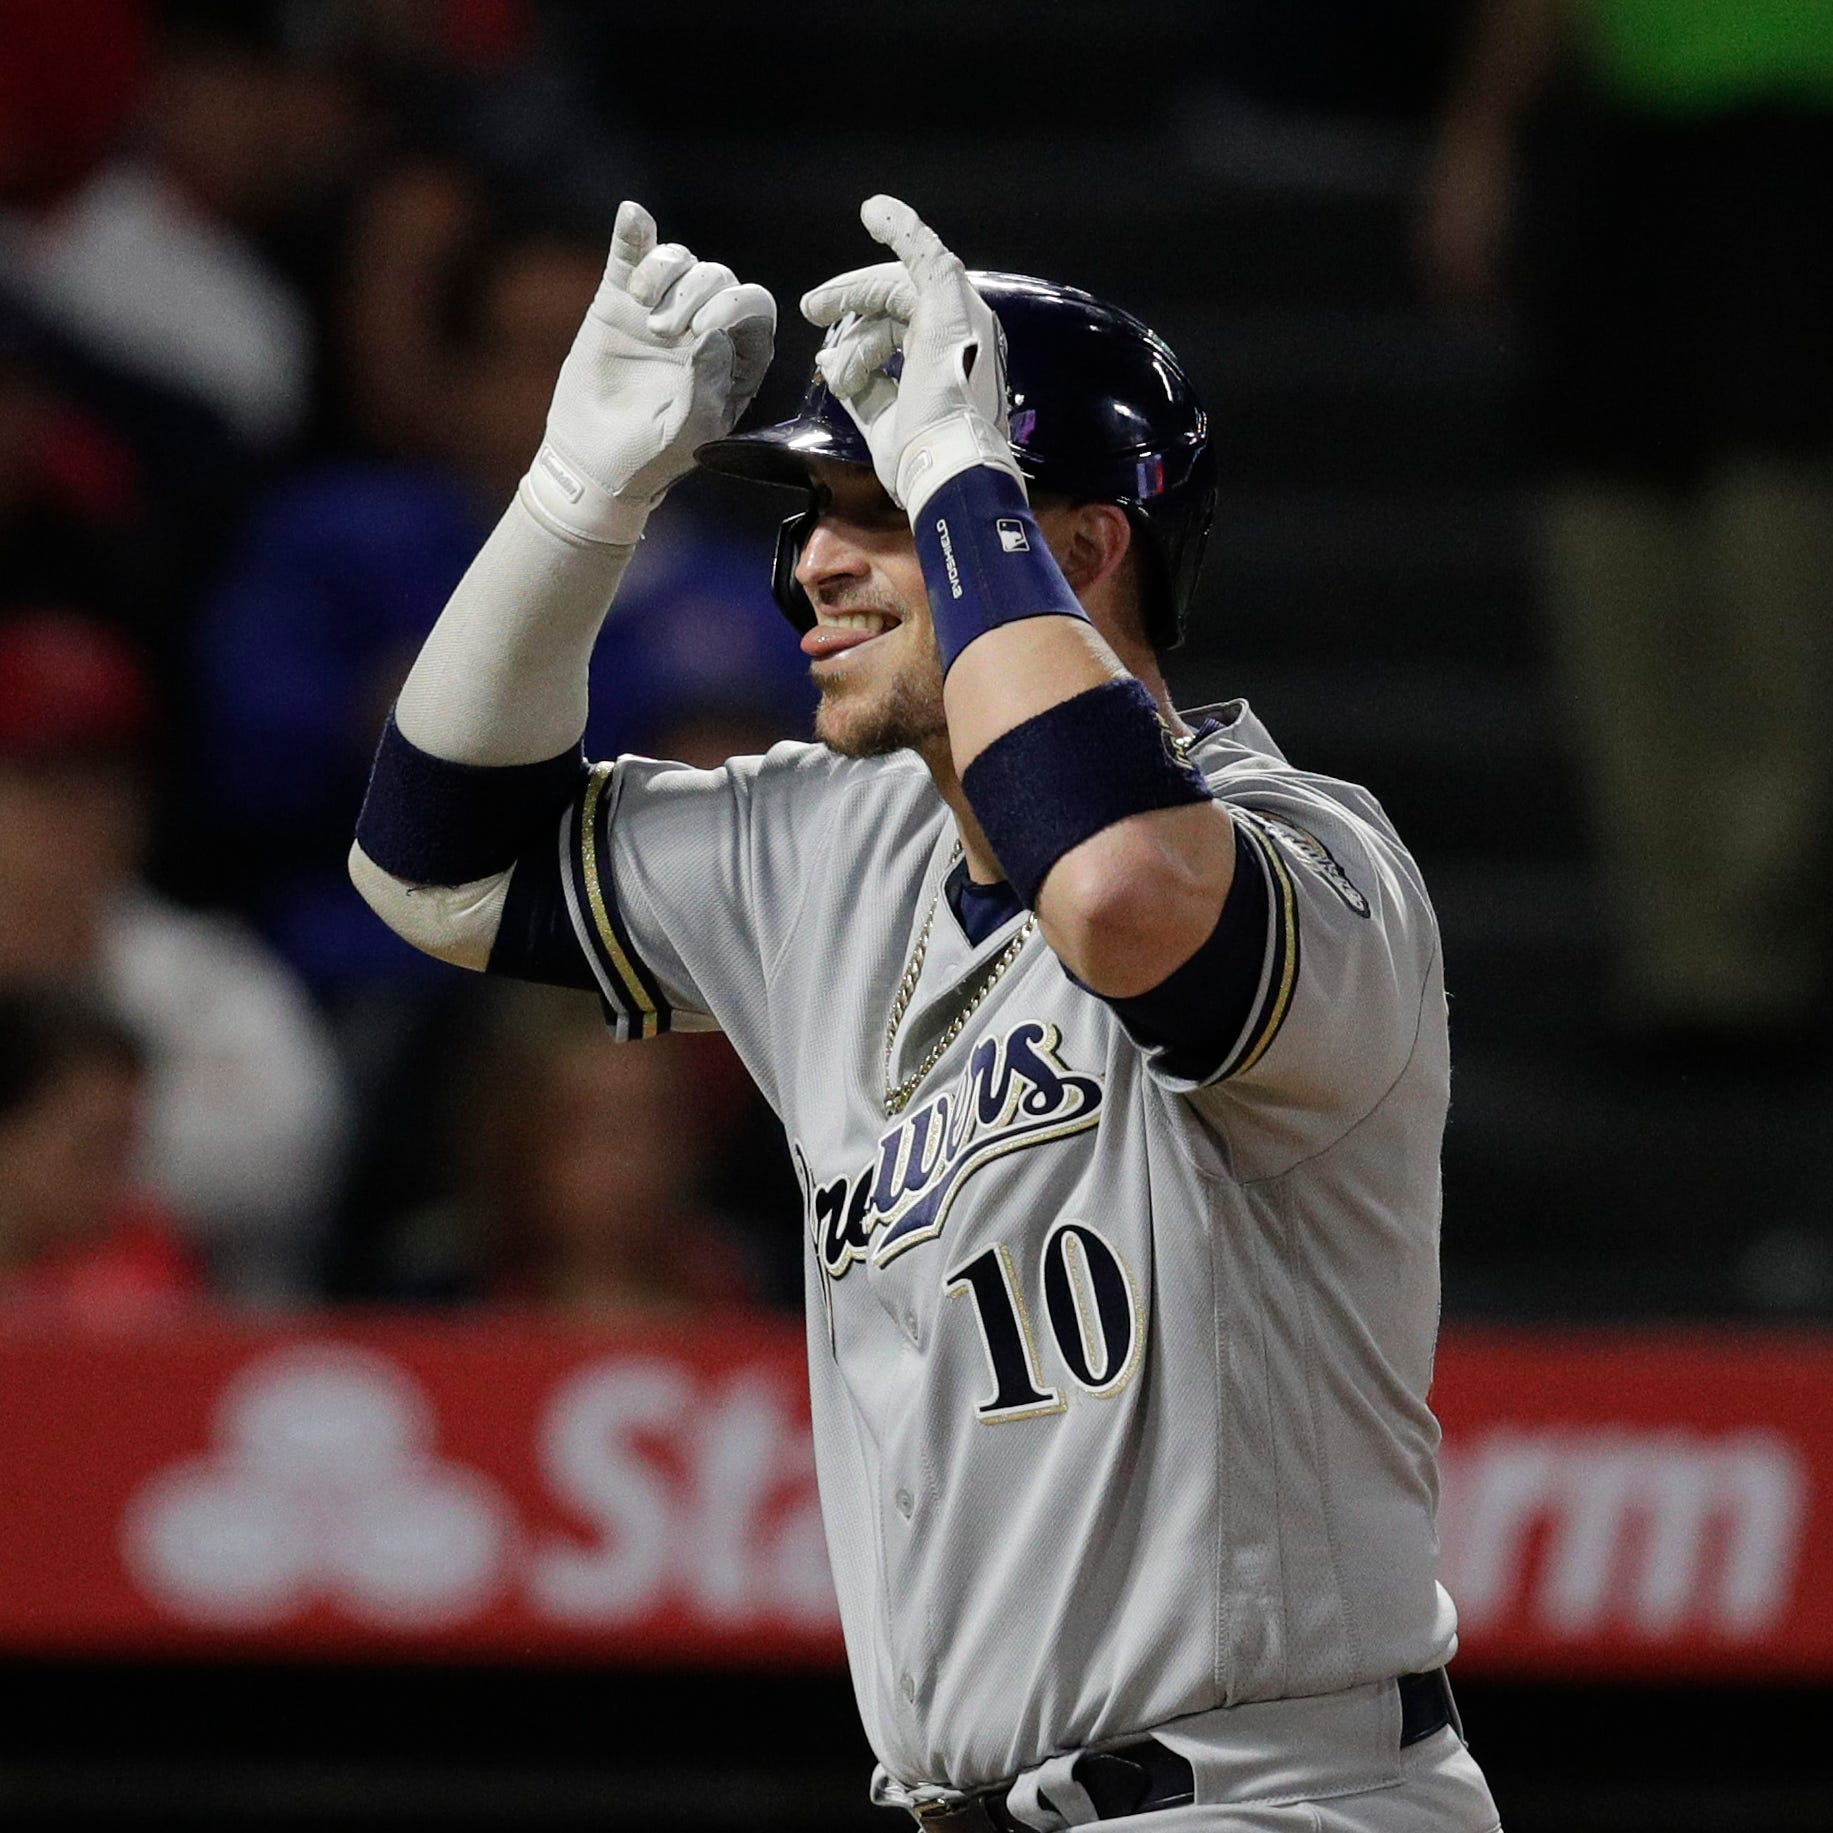 Brewers catcher Yasmani Grandal has bigger things on his mind than another NL championship ring